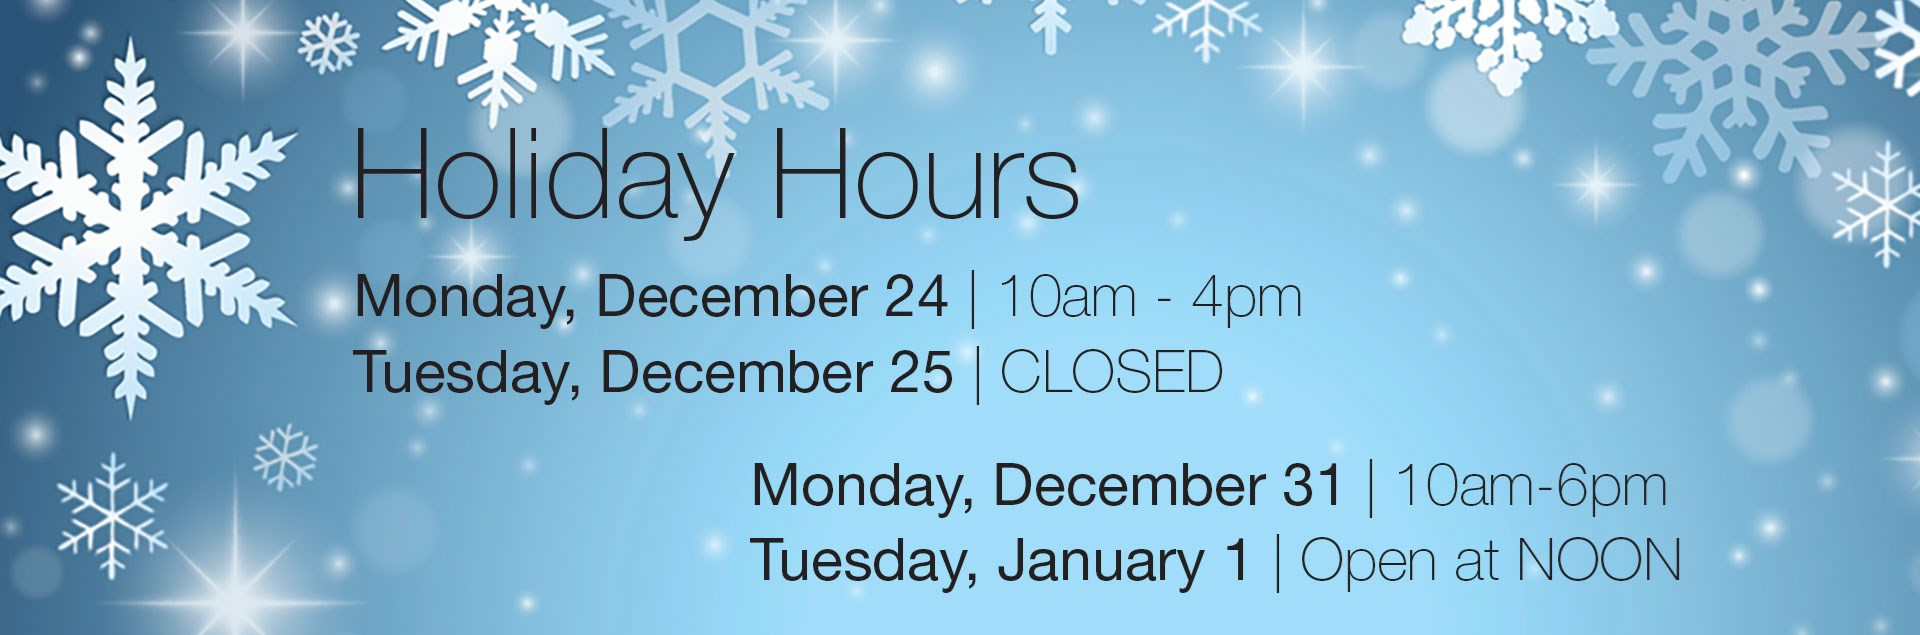 Williams and Kay Holiday Hours